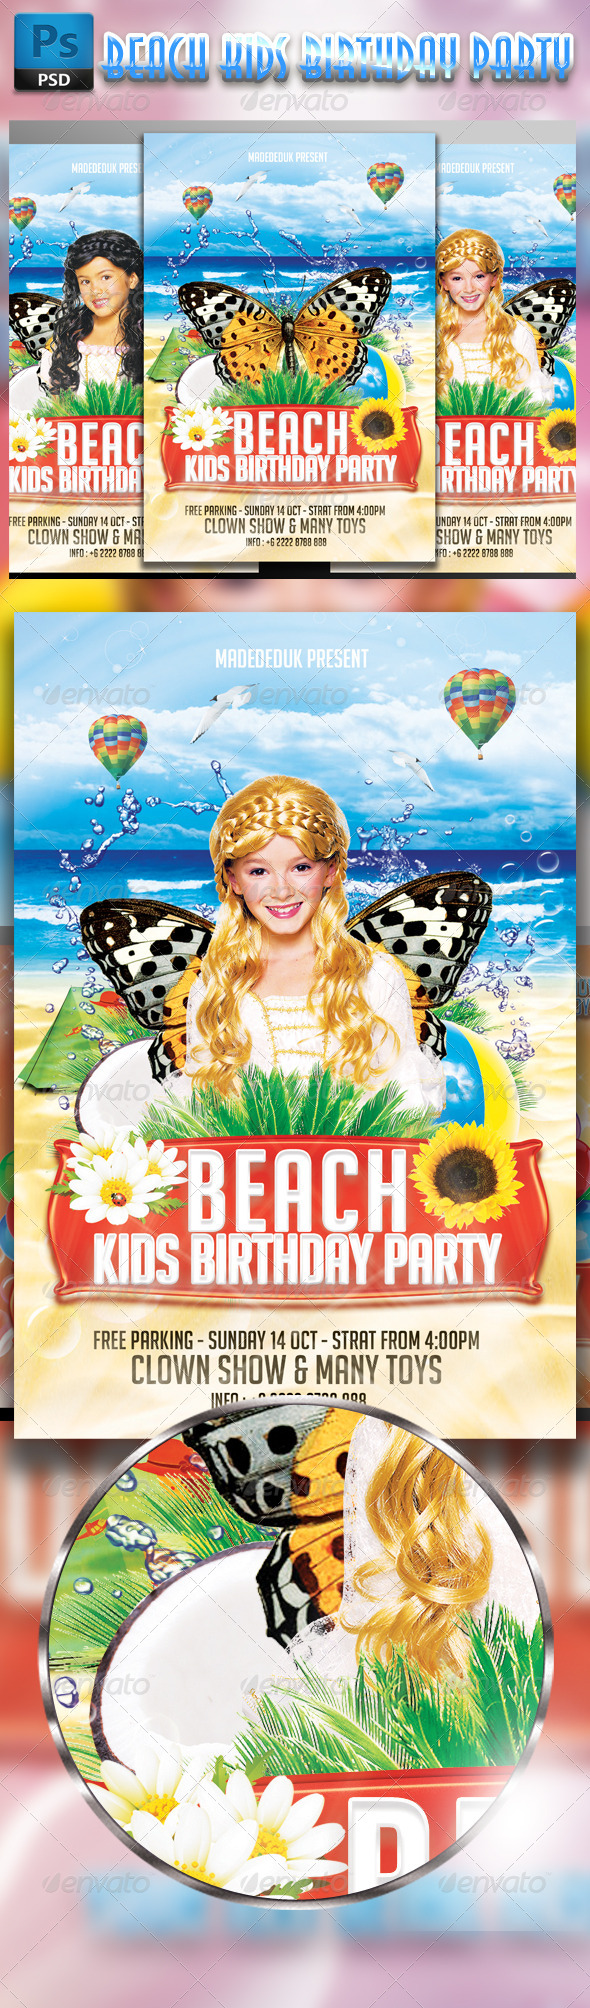 GraphicRiver Beach Kids Birthday Party Flyer 7910926